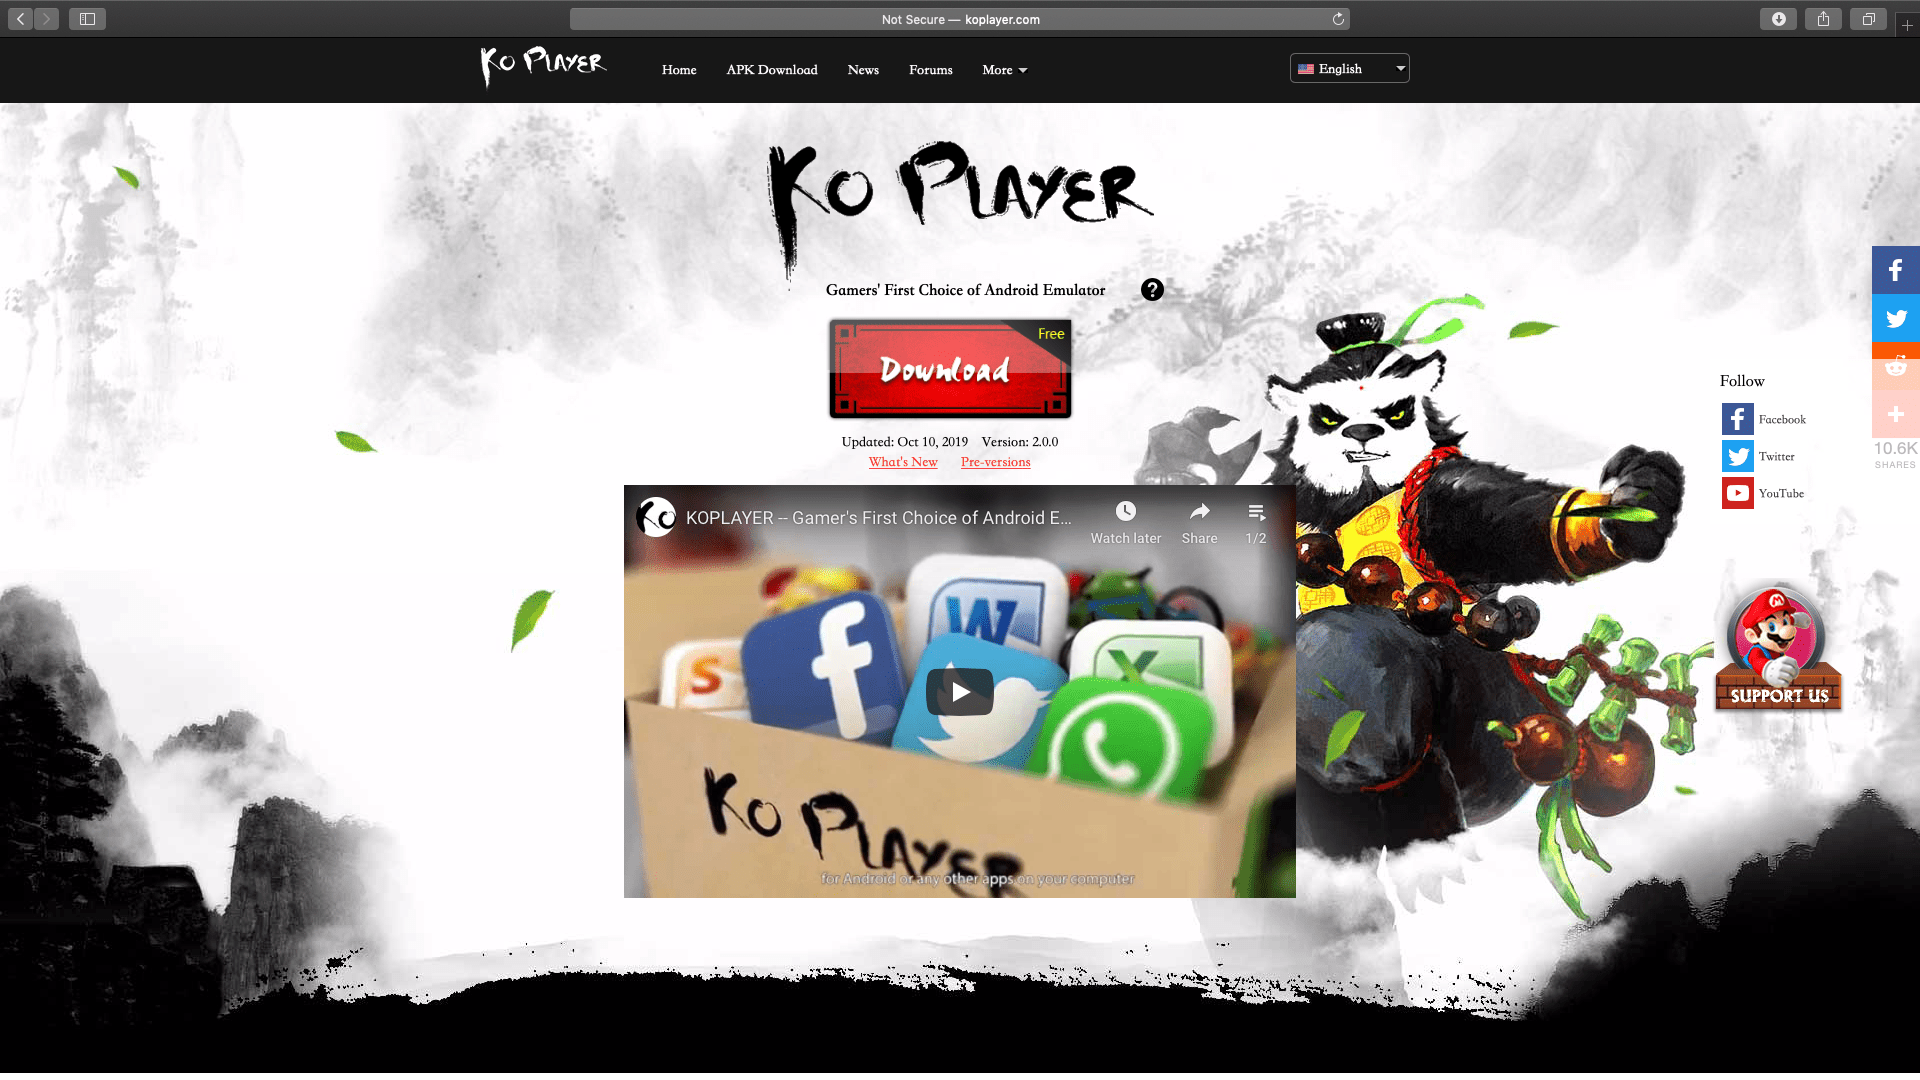 KO Player Download Page